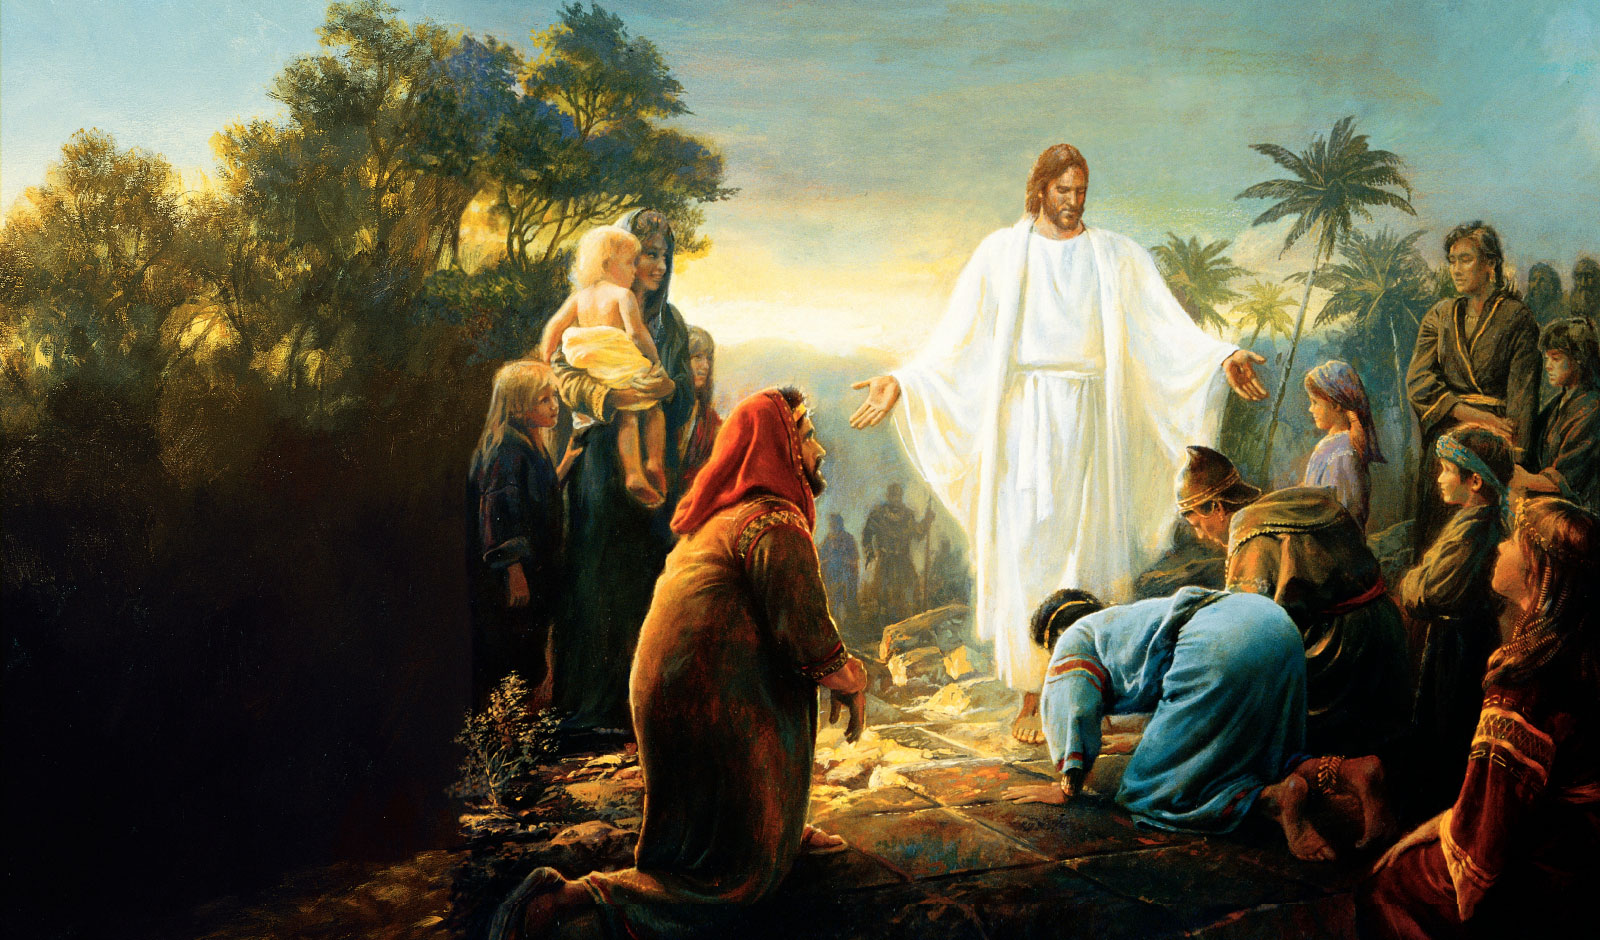 Christ revealing himself to the people of the New World. Image via sistereskanderl.com